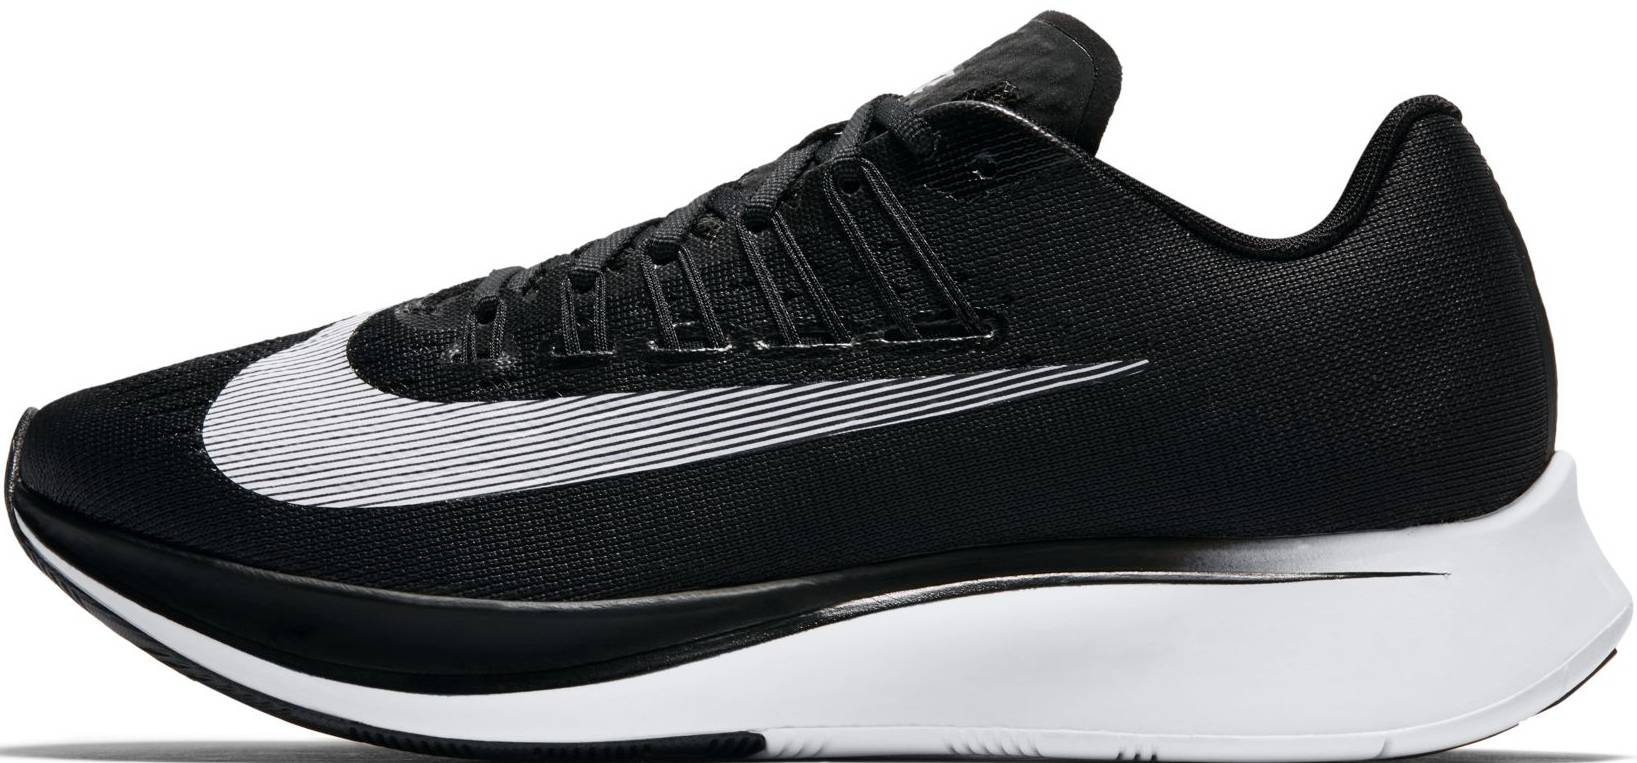 Only £80 + Review of Nike Zoom Fly